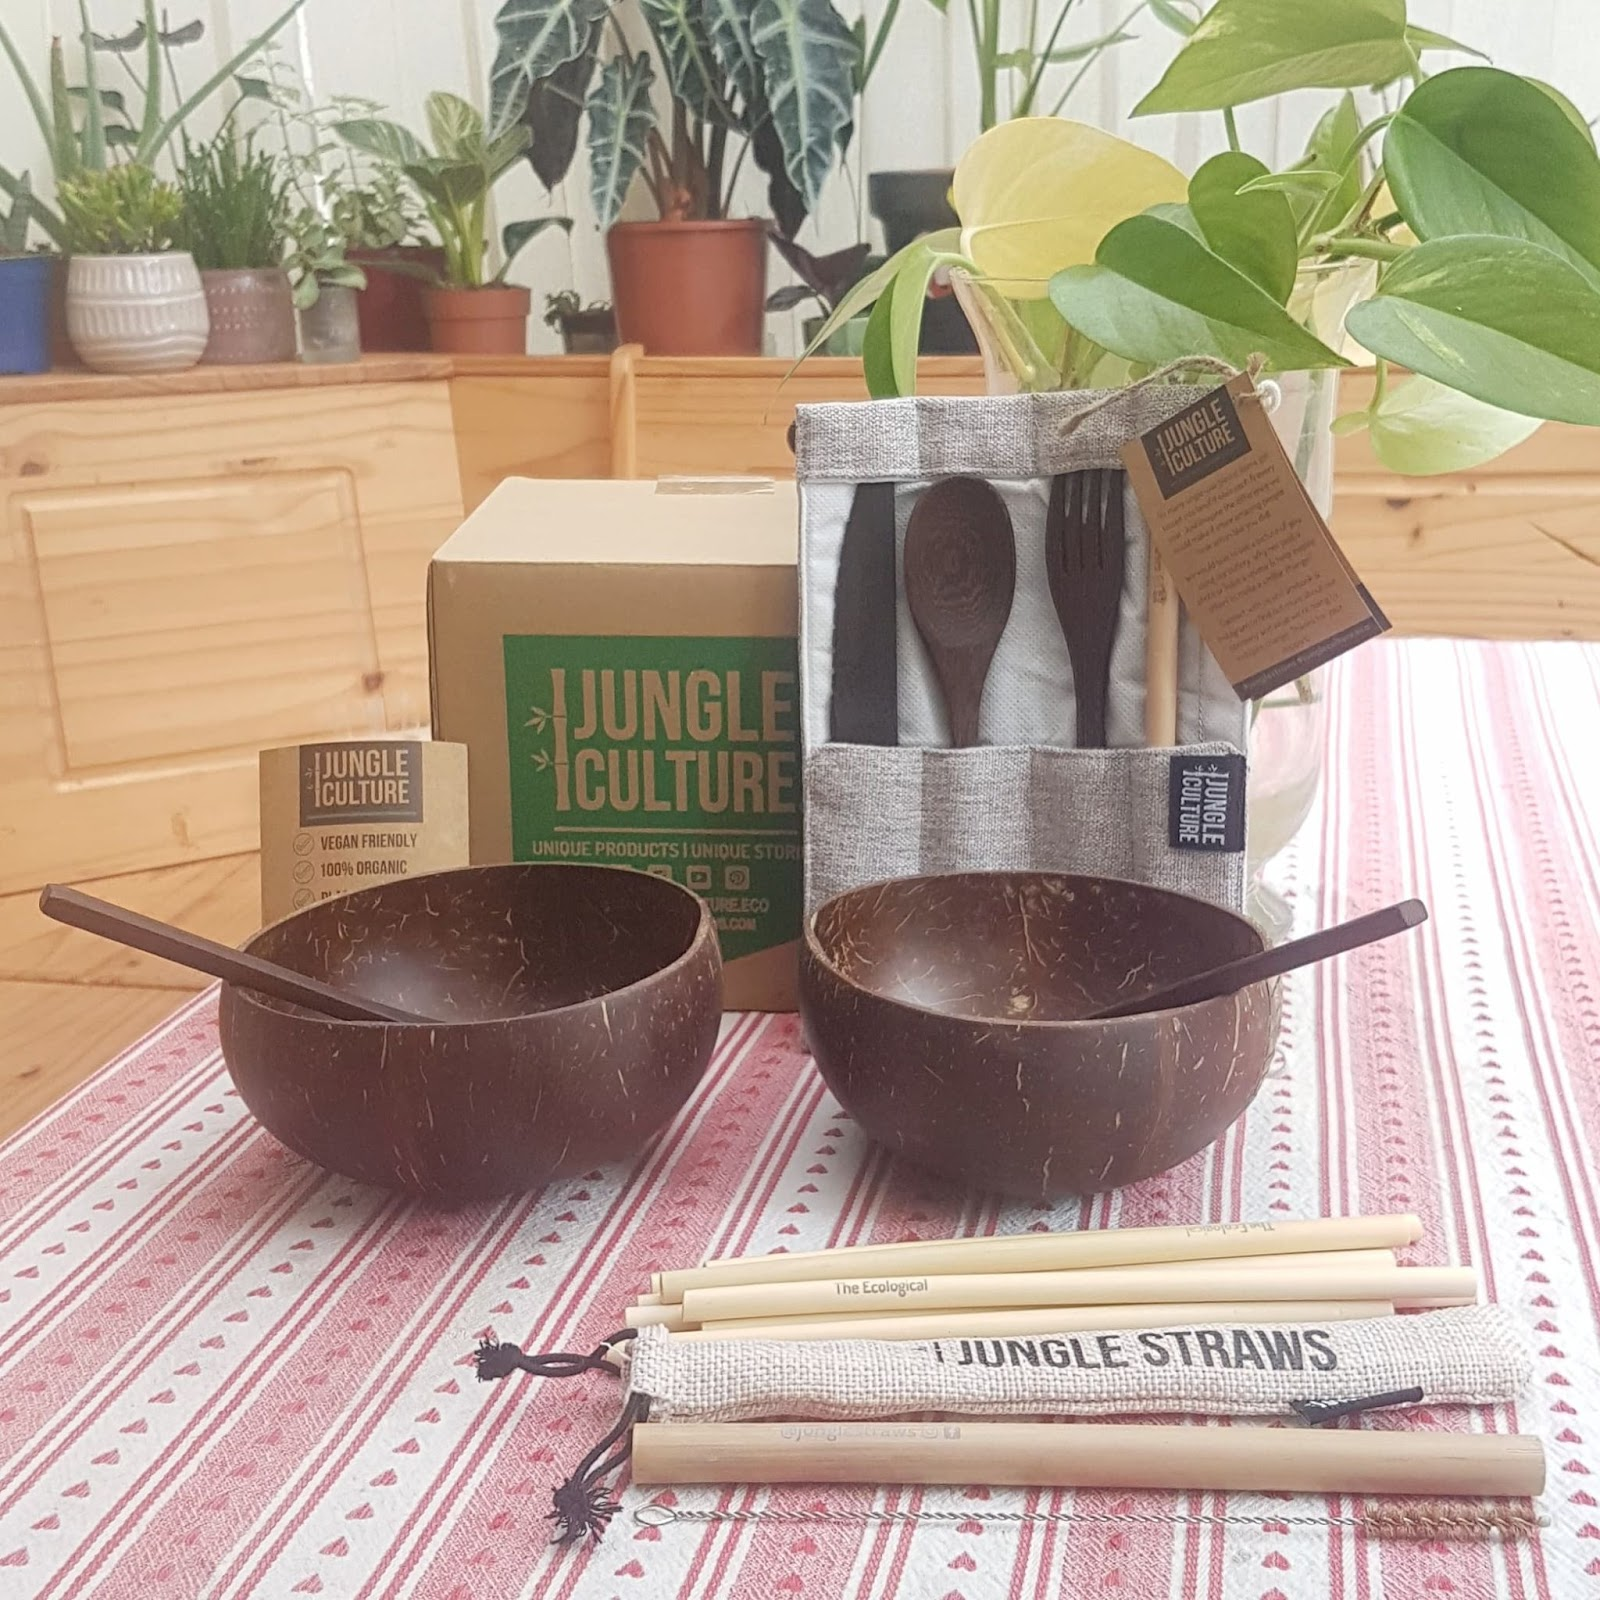 A sustainable goal can be slowly changing out low quality and plastic products for lifelong options and eco friendly swaps like bamboo bowls, reusable straws, and washable travel cutlery